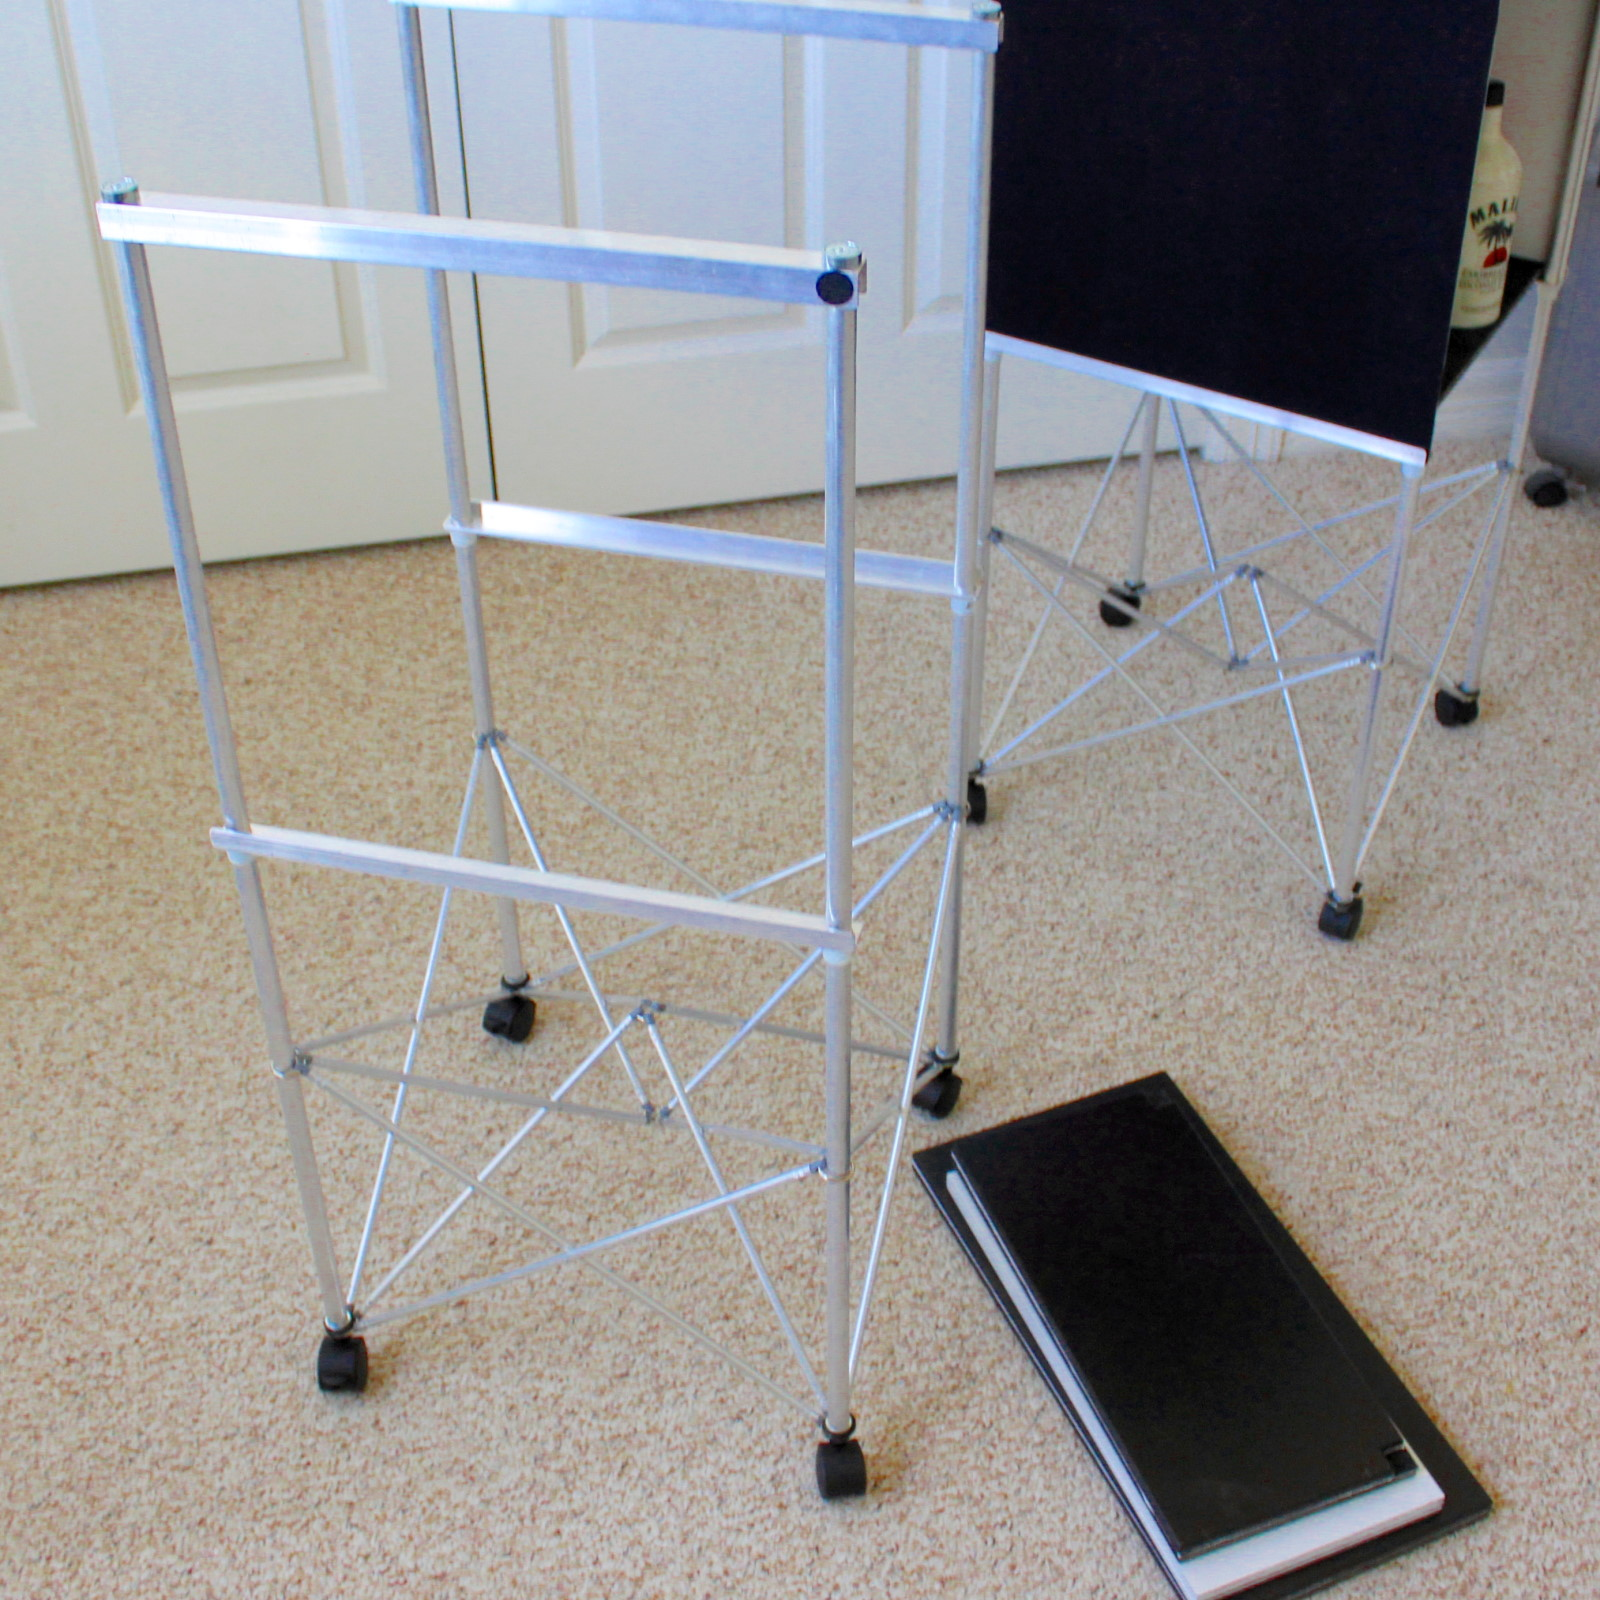 Qble - Cube Table by Spider